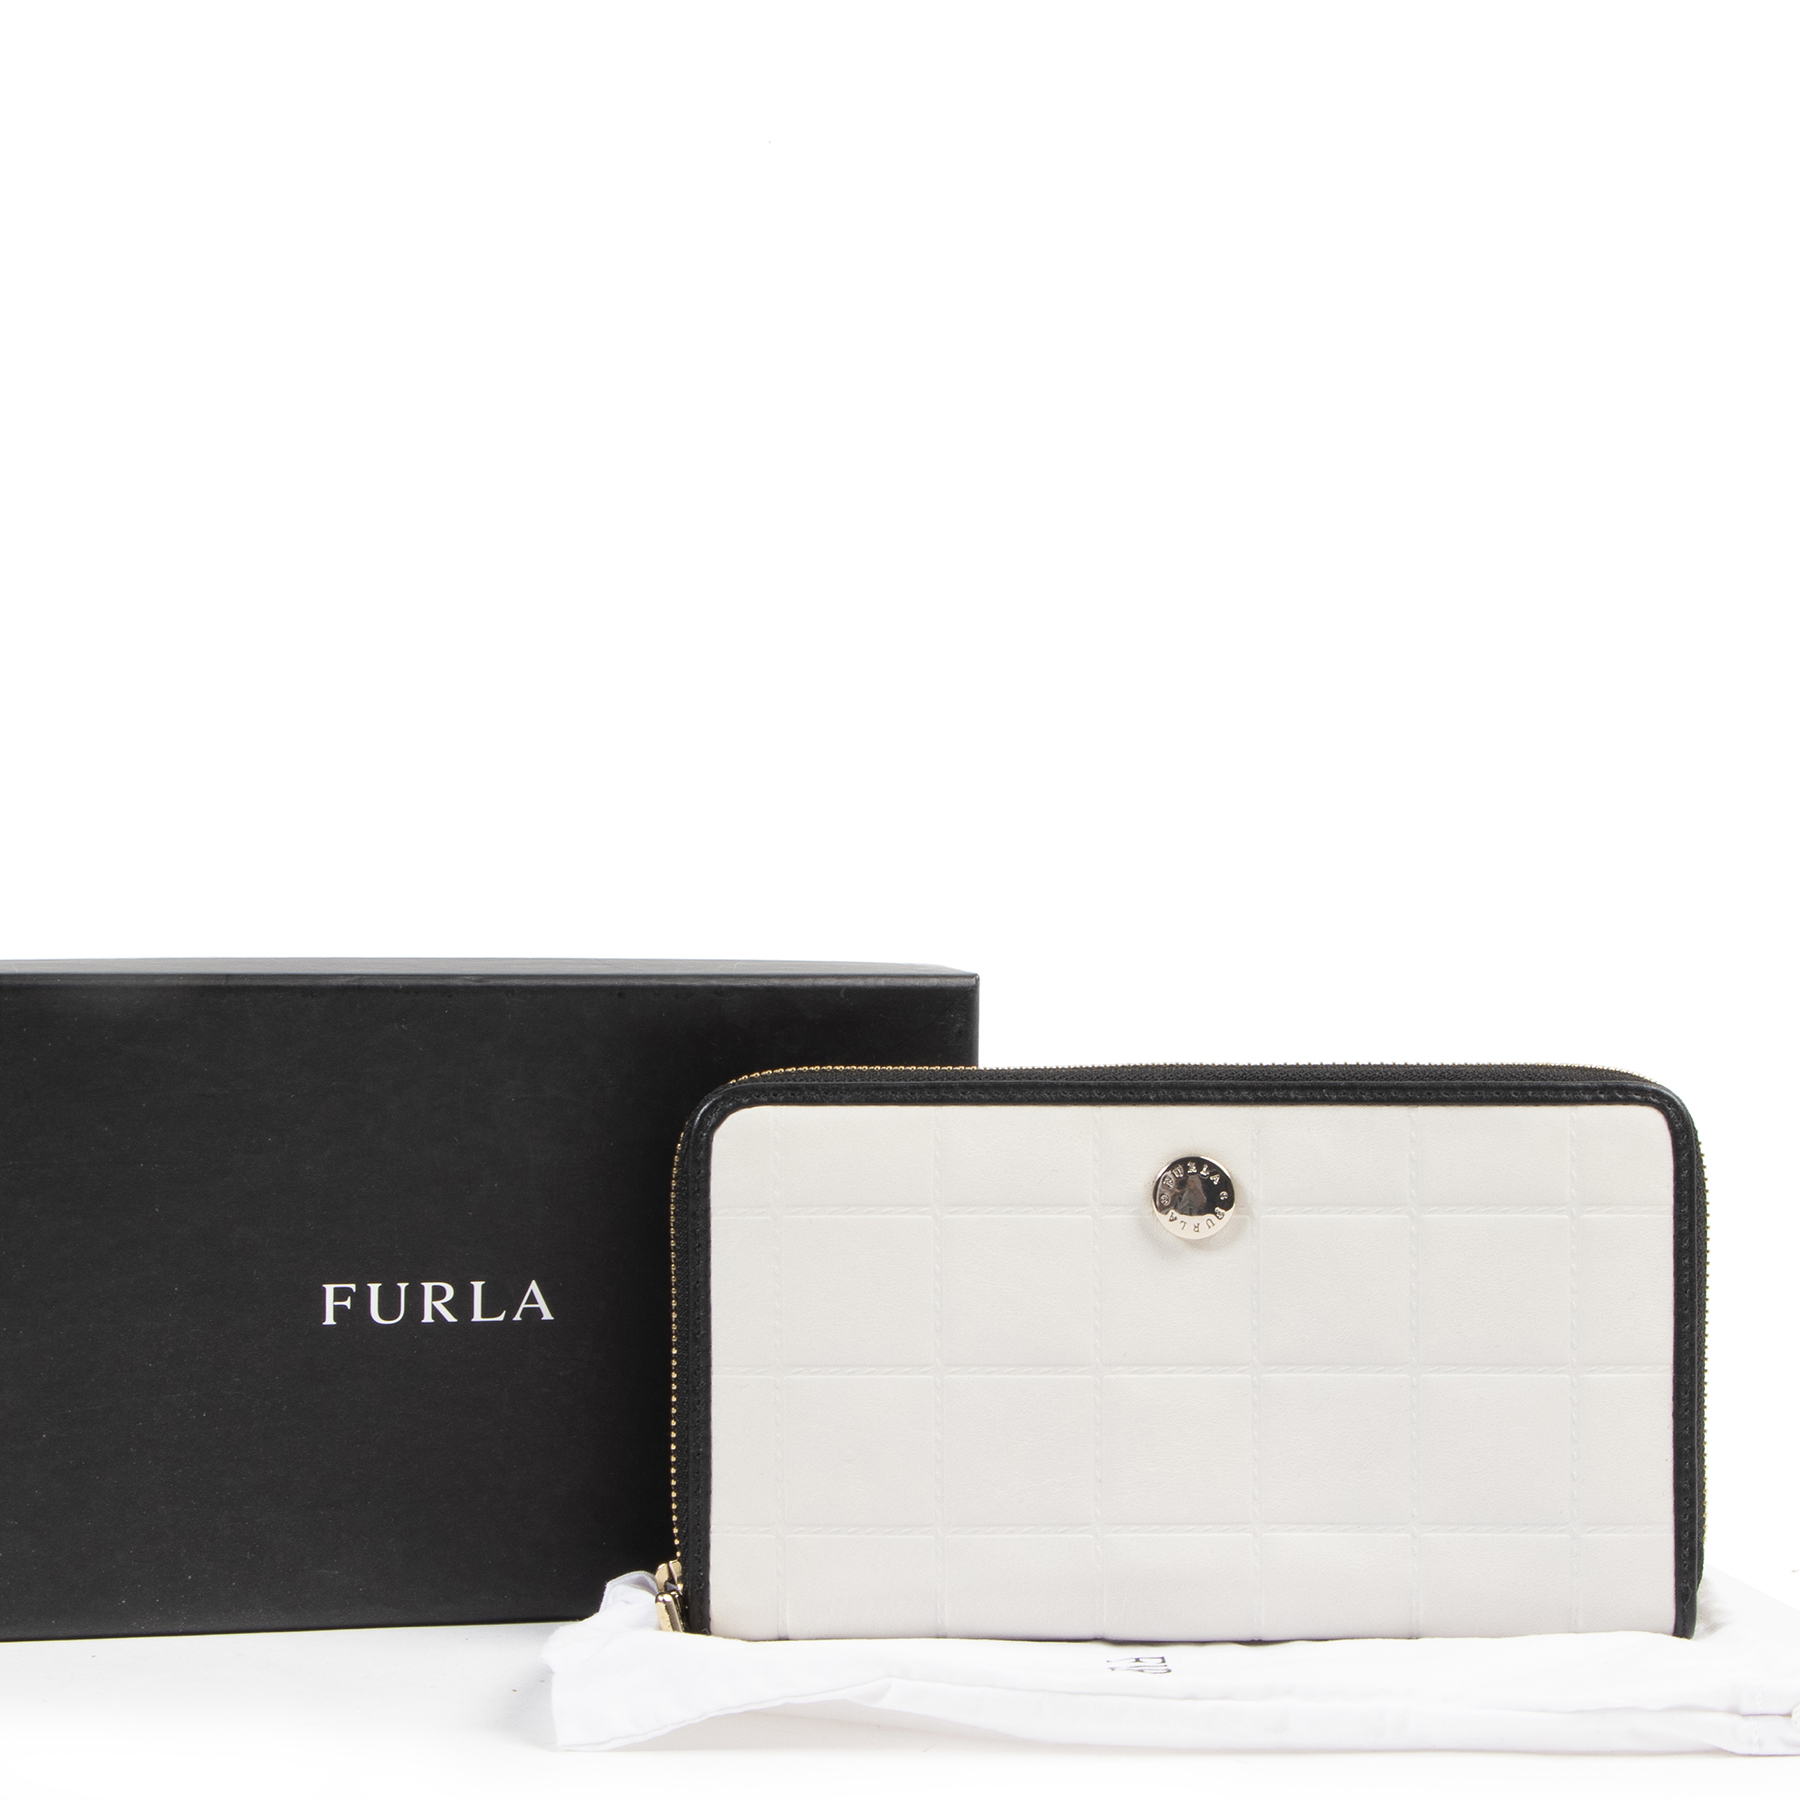 Authentic secondhand Furla Off-White Zippy Wallet designer accessories fashion luxury vintage webshop safe secure online shopping